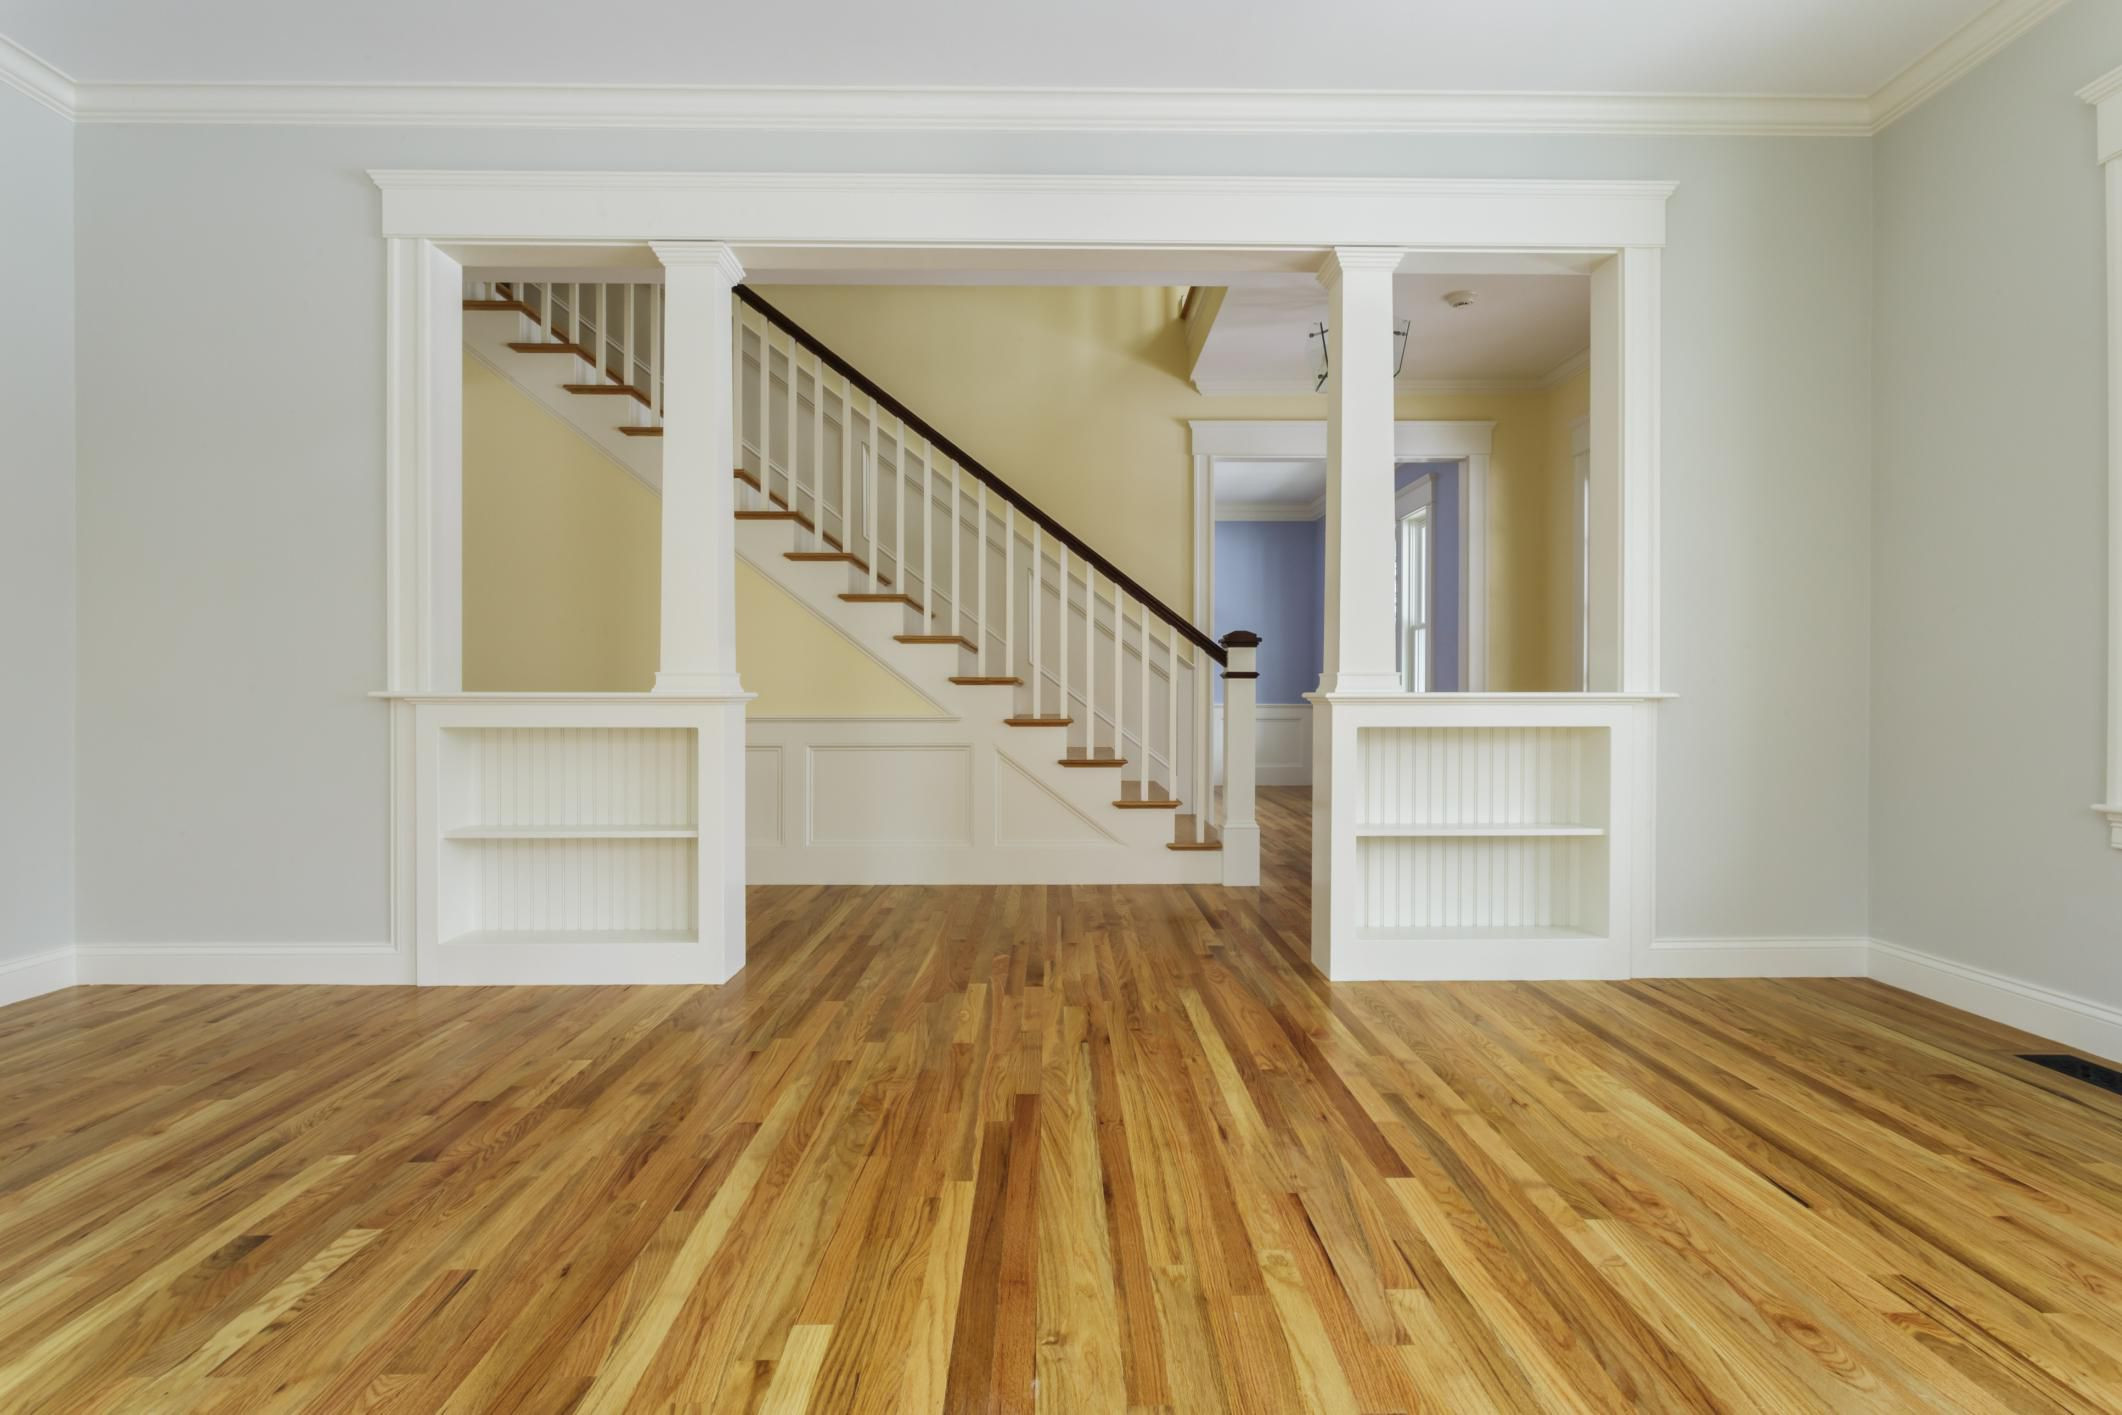 cabin grade hardwood flooring of guide to solid hardwood floors in 168686571 56a49f213df78cf772834e24